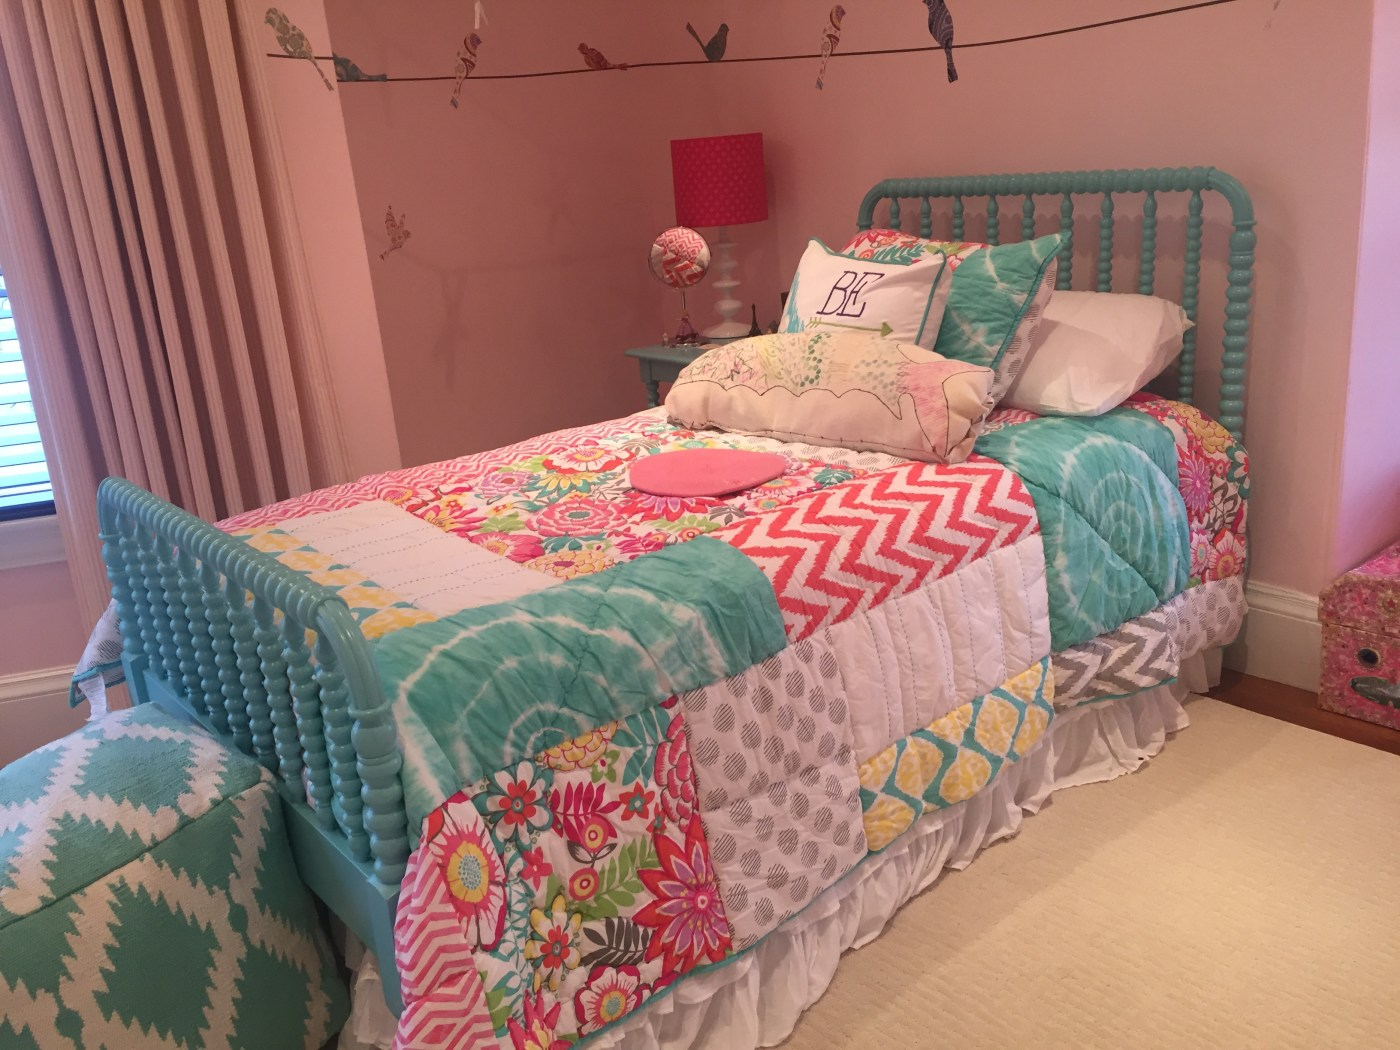 One Room Challenge Week 1: Six Weeks, One Bedroom, Two Girls! | Interiors for Families | Kelly Rogers Interiors